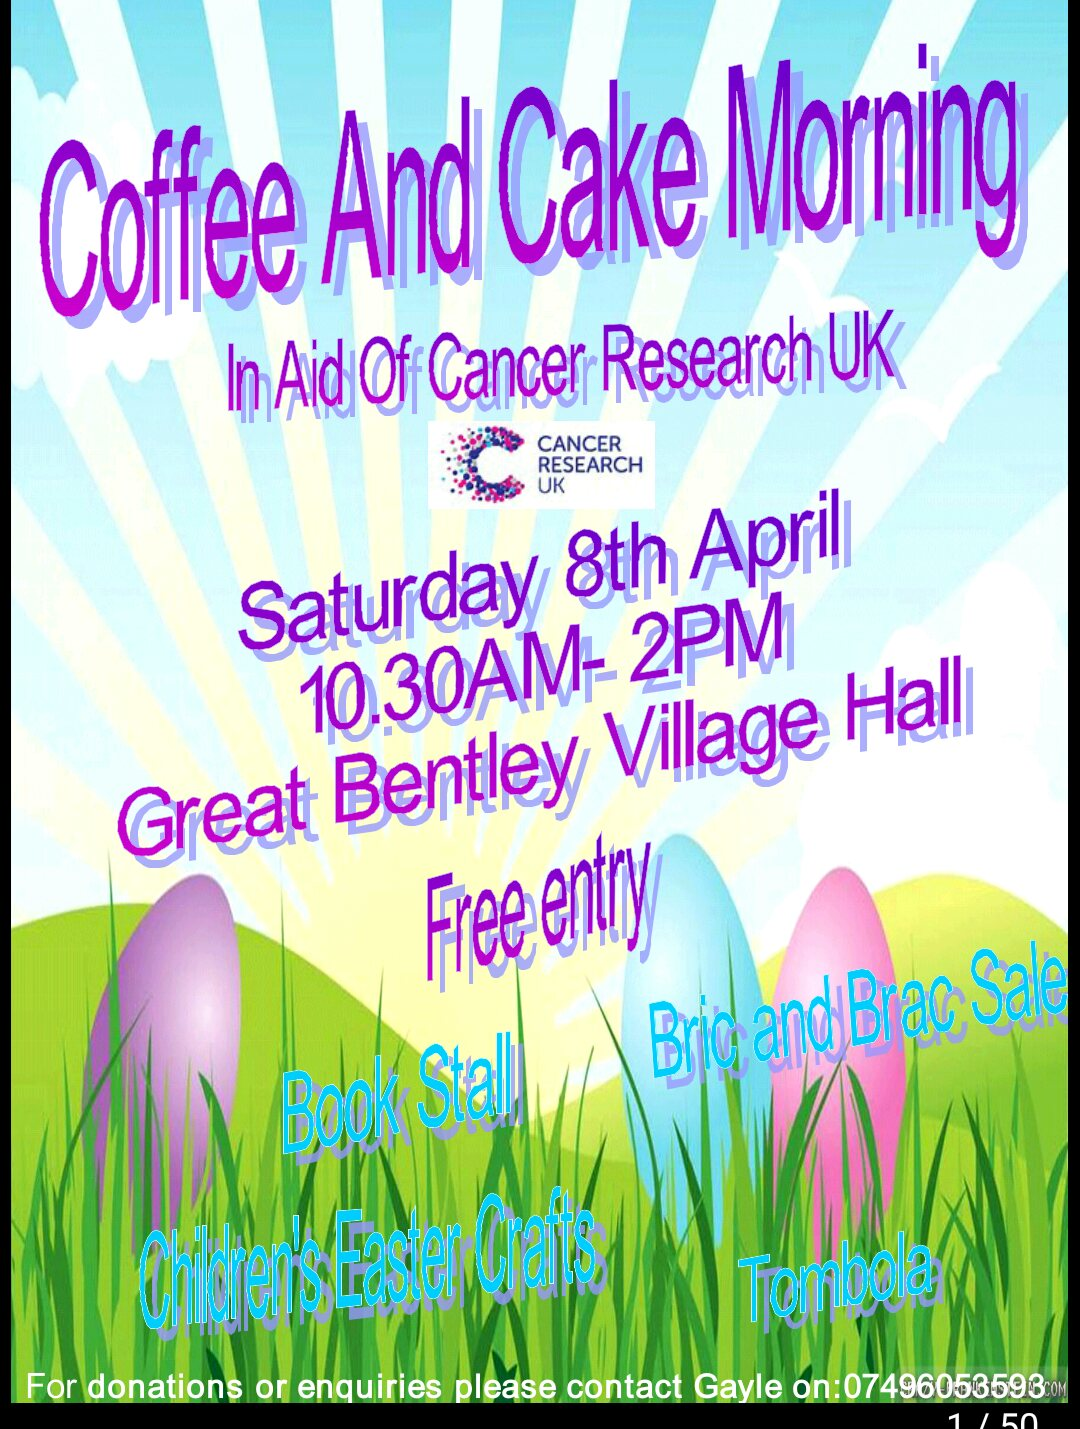 Coffee and cake morning fundraiser